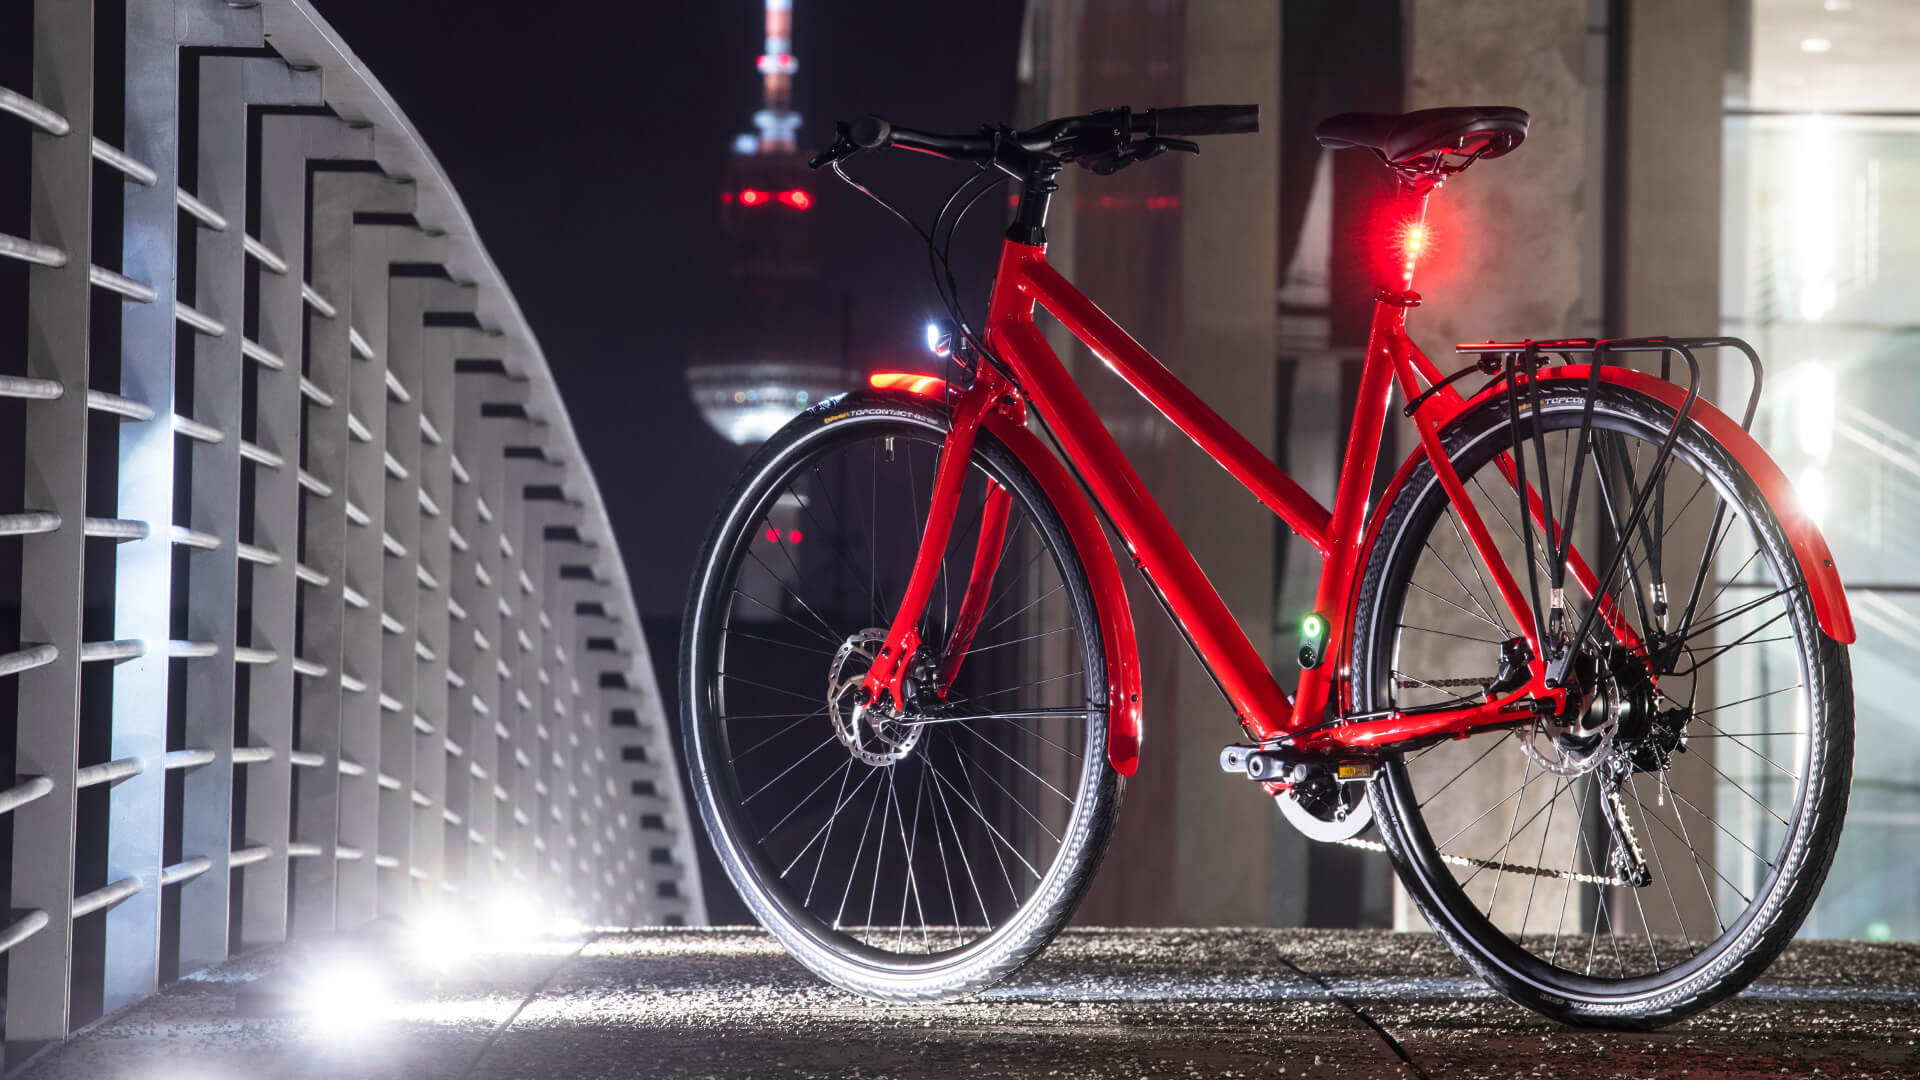 stellar in red with LED rear light